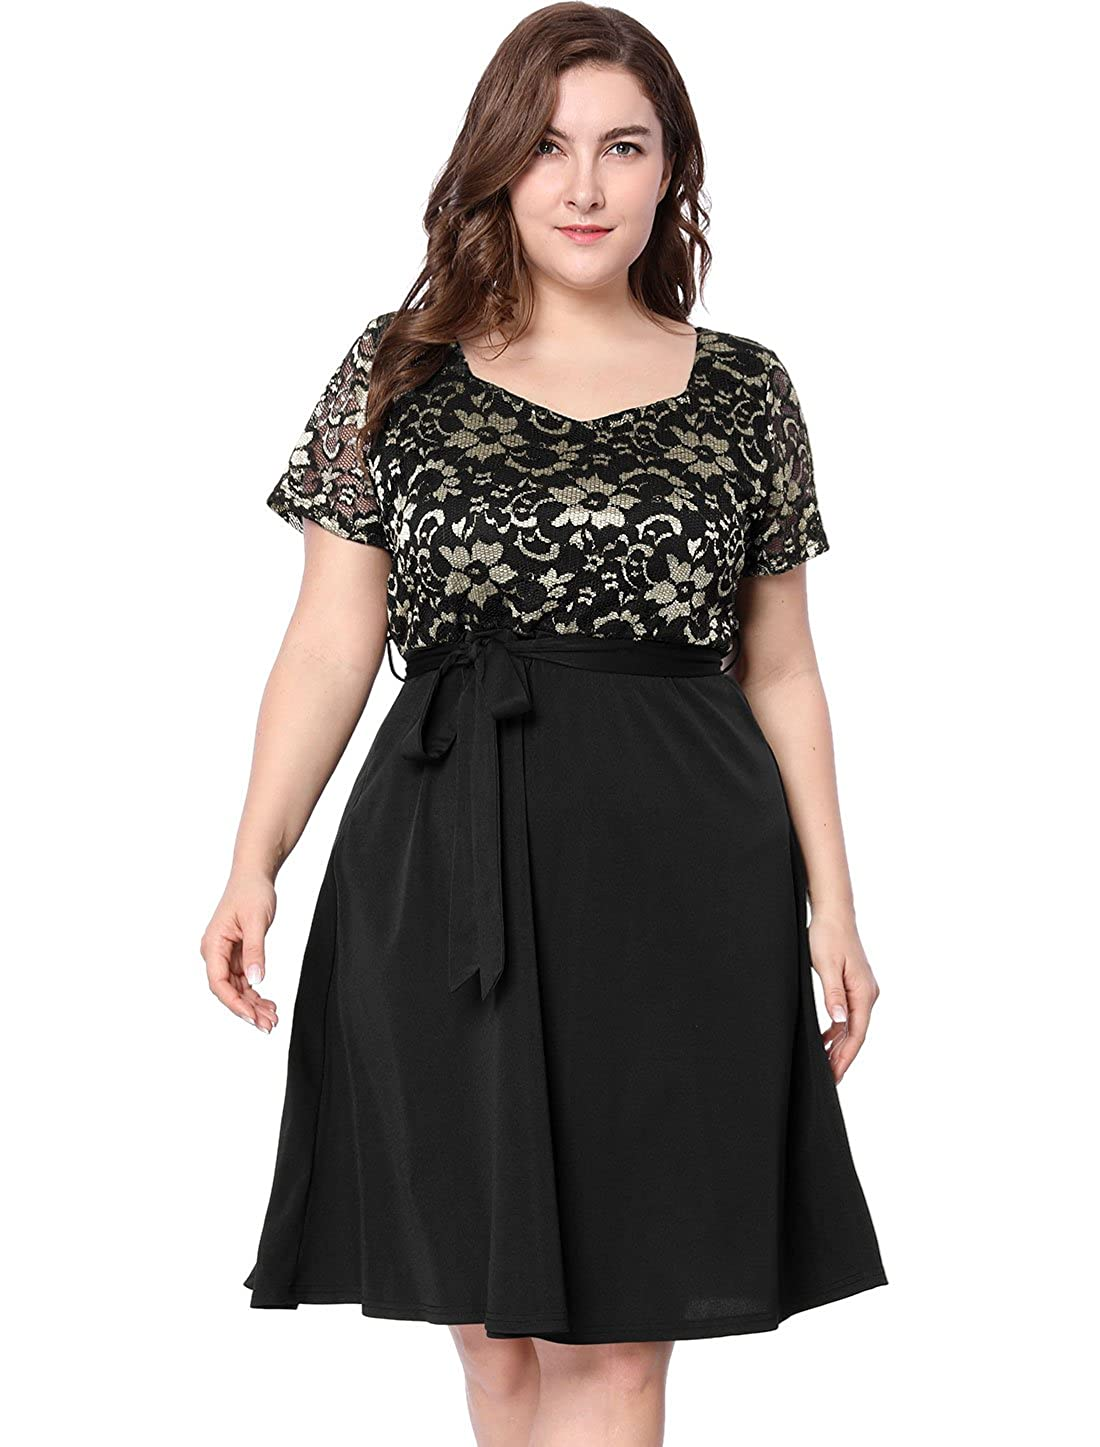 Agnes Orinda Women's Plus Size Square Neck Belted Floral Lace Panel Dress s18041300it0784